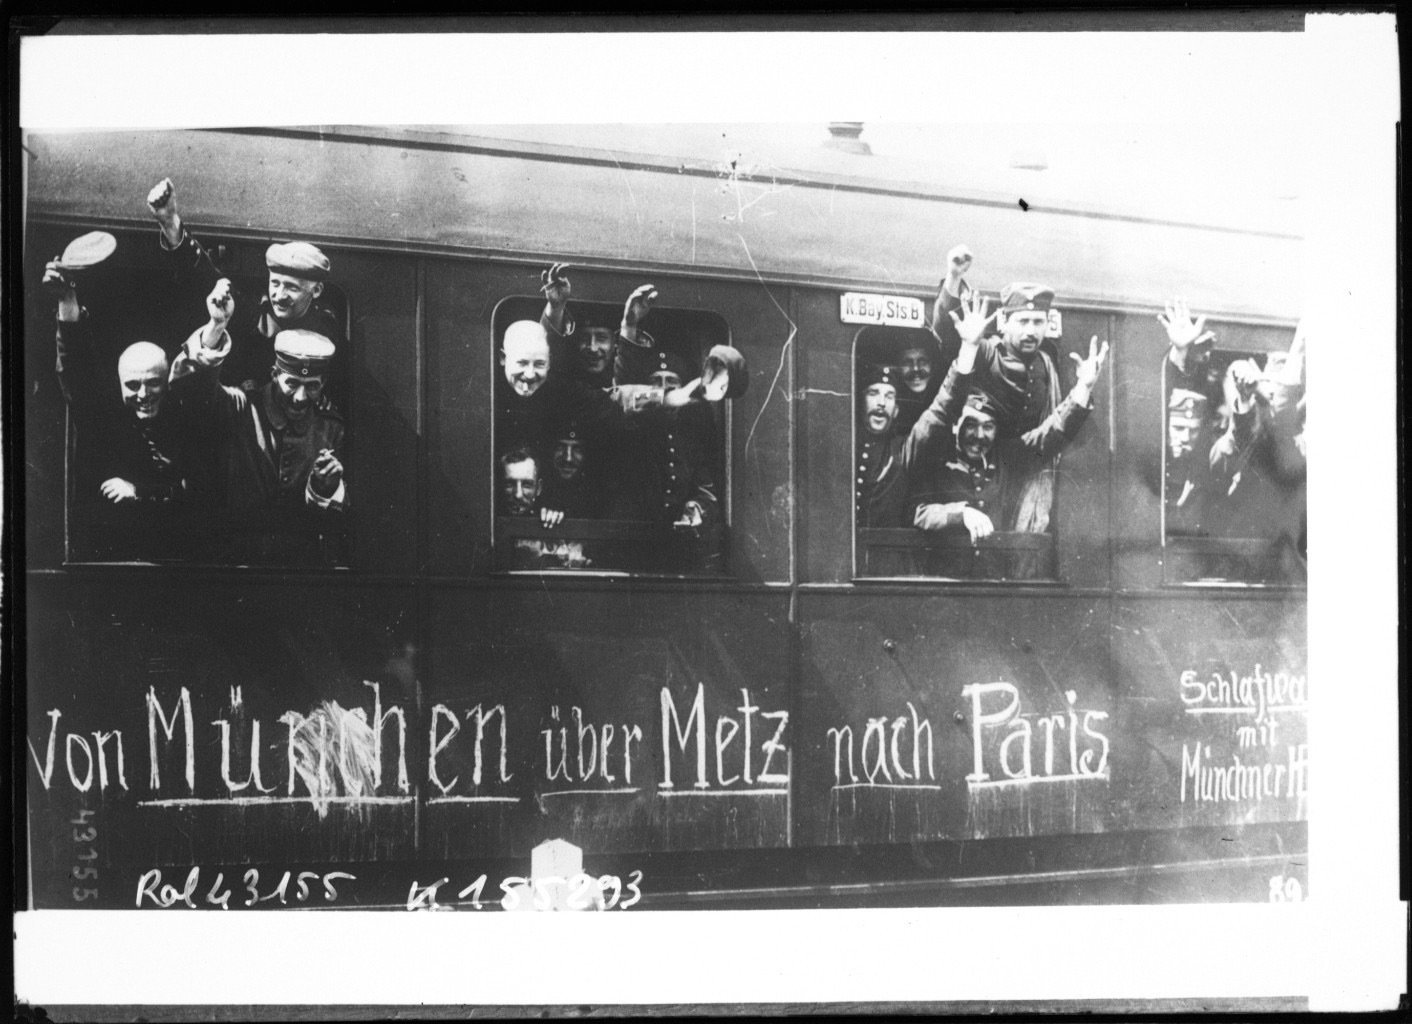 German soldiers leaving Munich, Agence Rol. Agence photographique, French National Library - Bibliothèque Nationale de France, Public Domain Mark